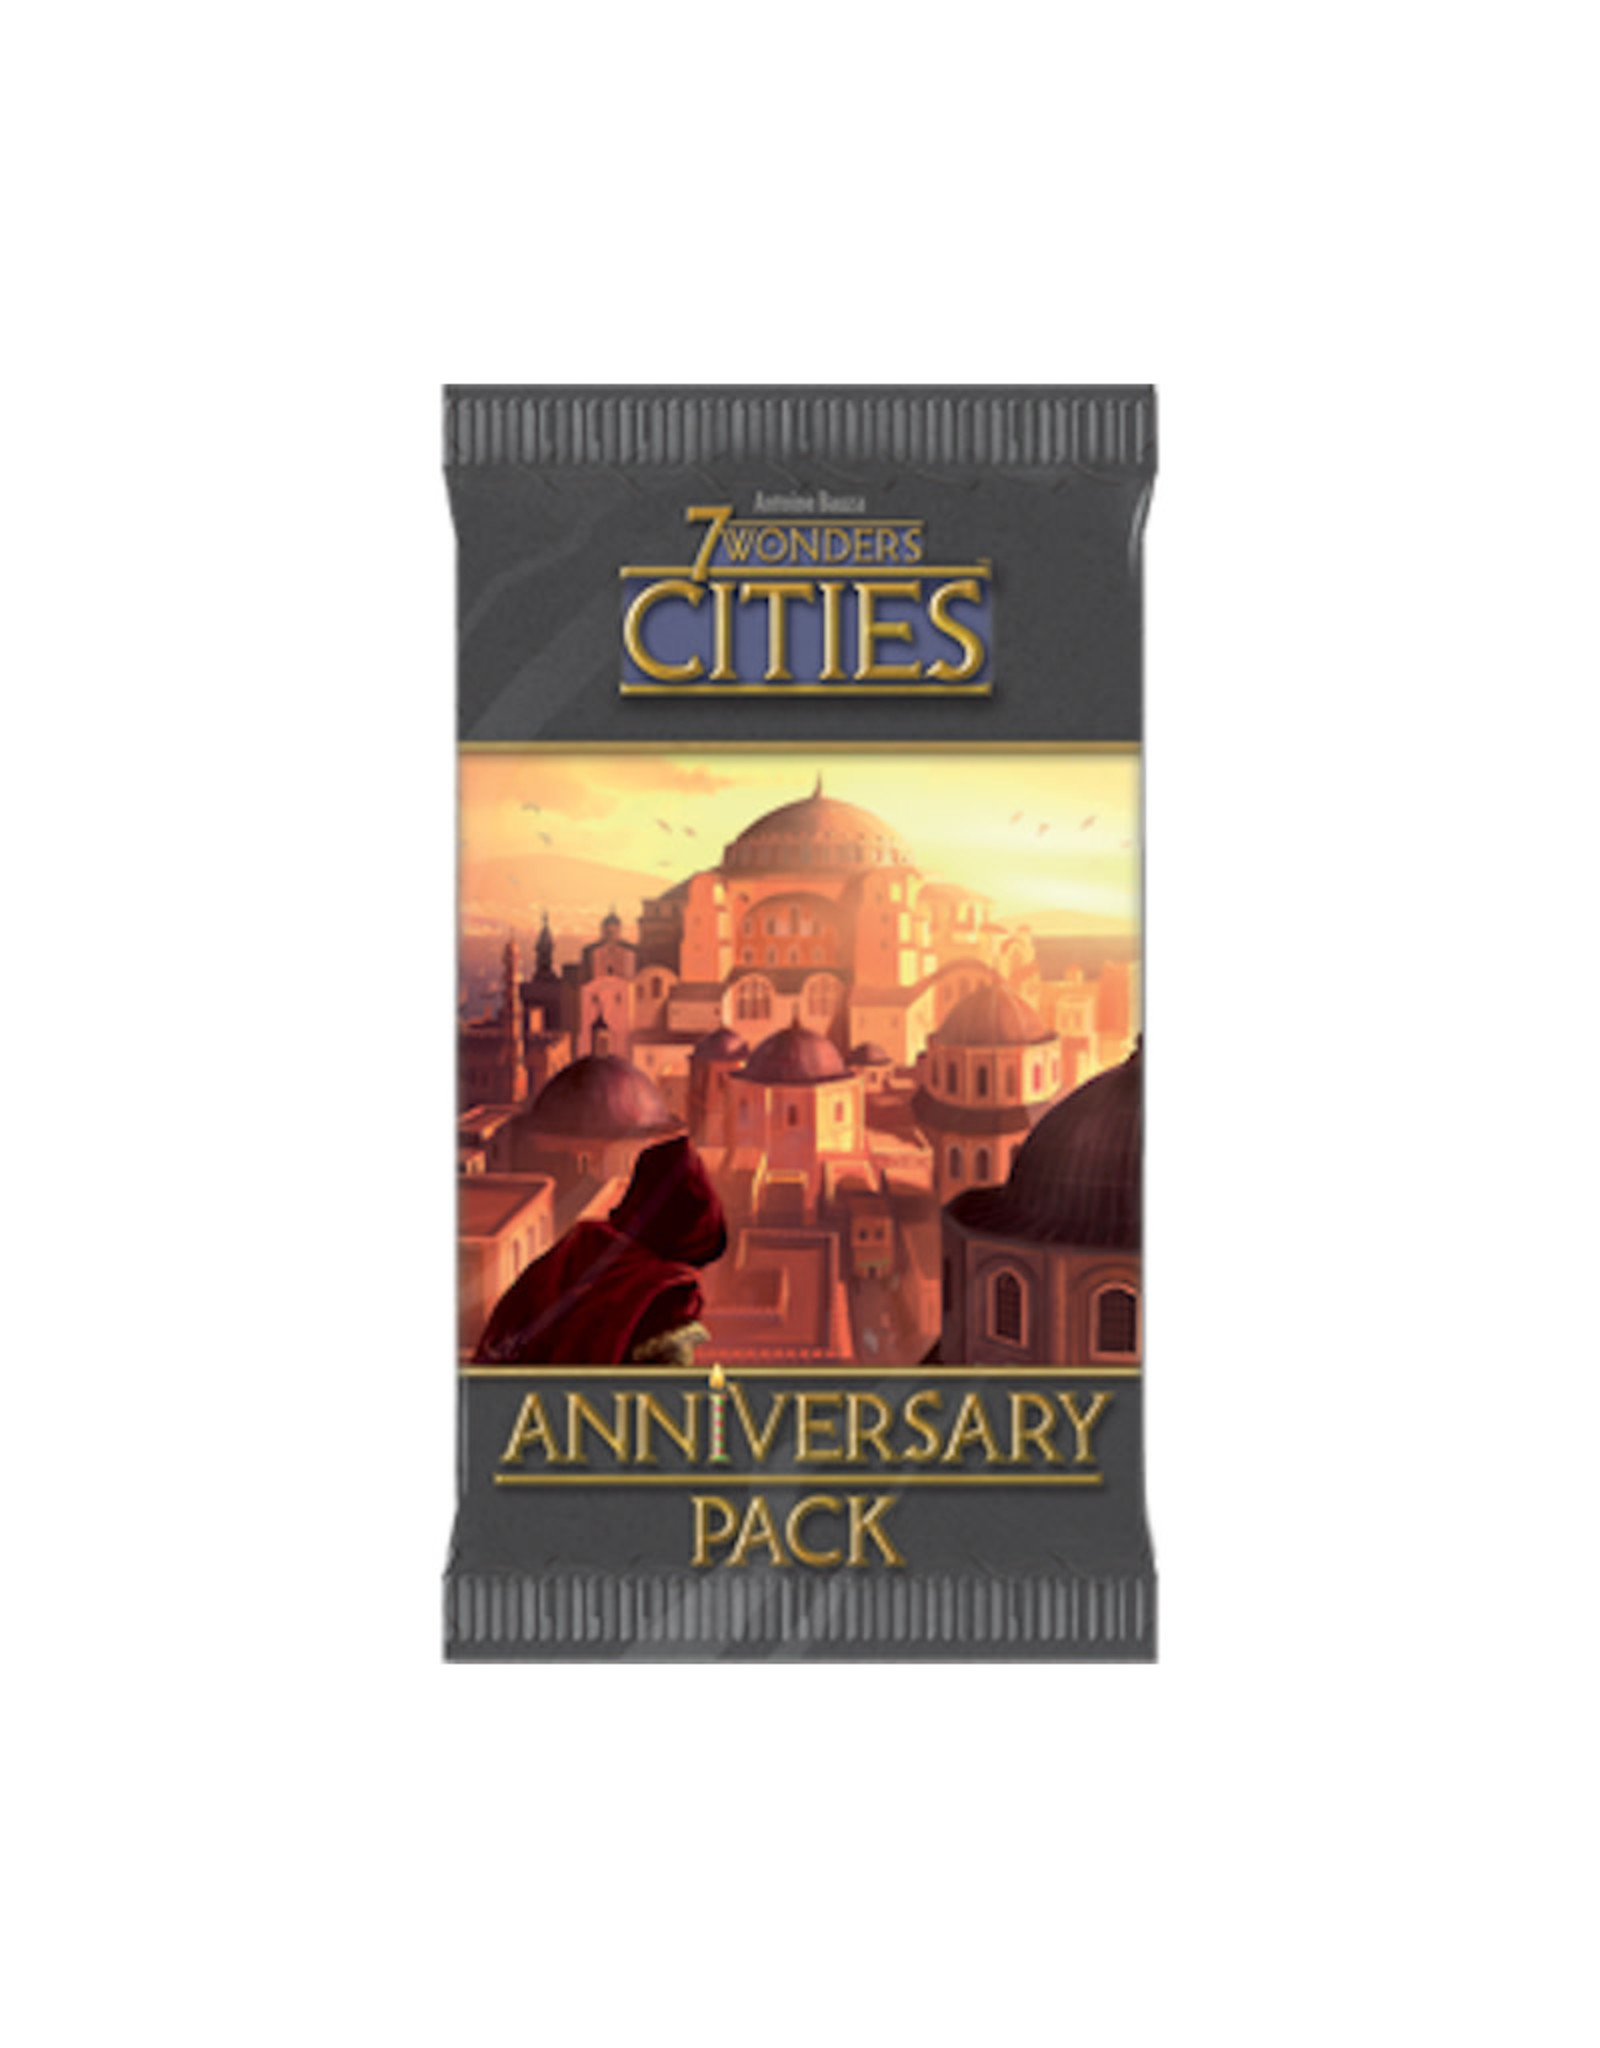 7 Wonders Cities Anniversary Pack Expansion (old edition only)